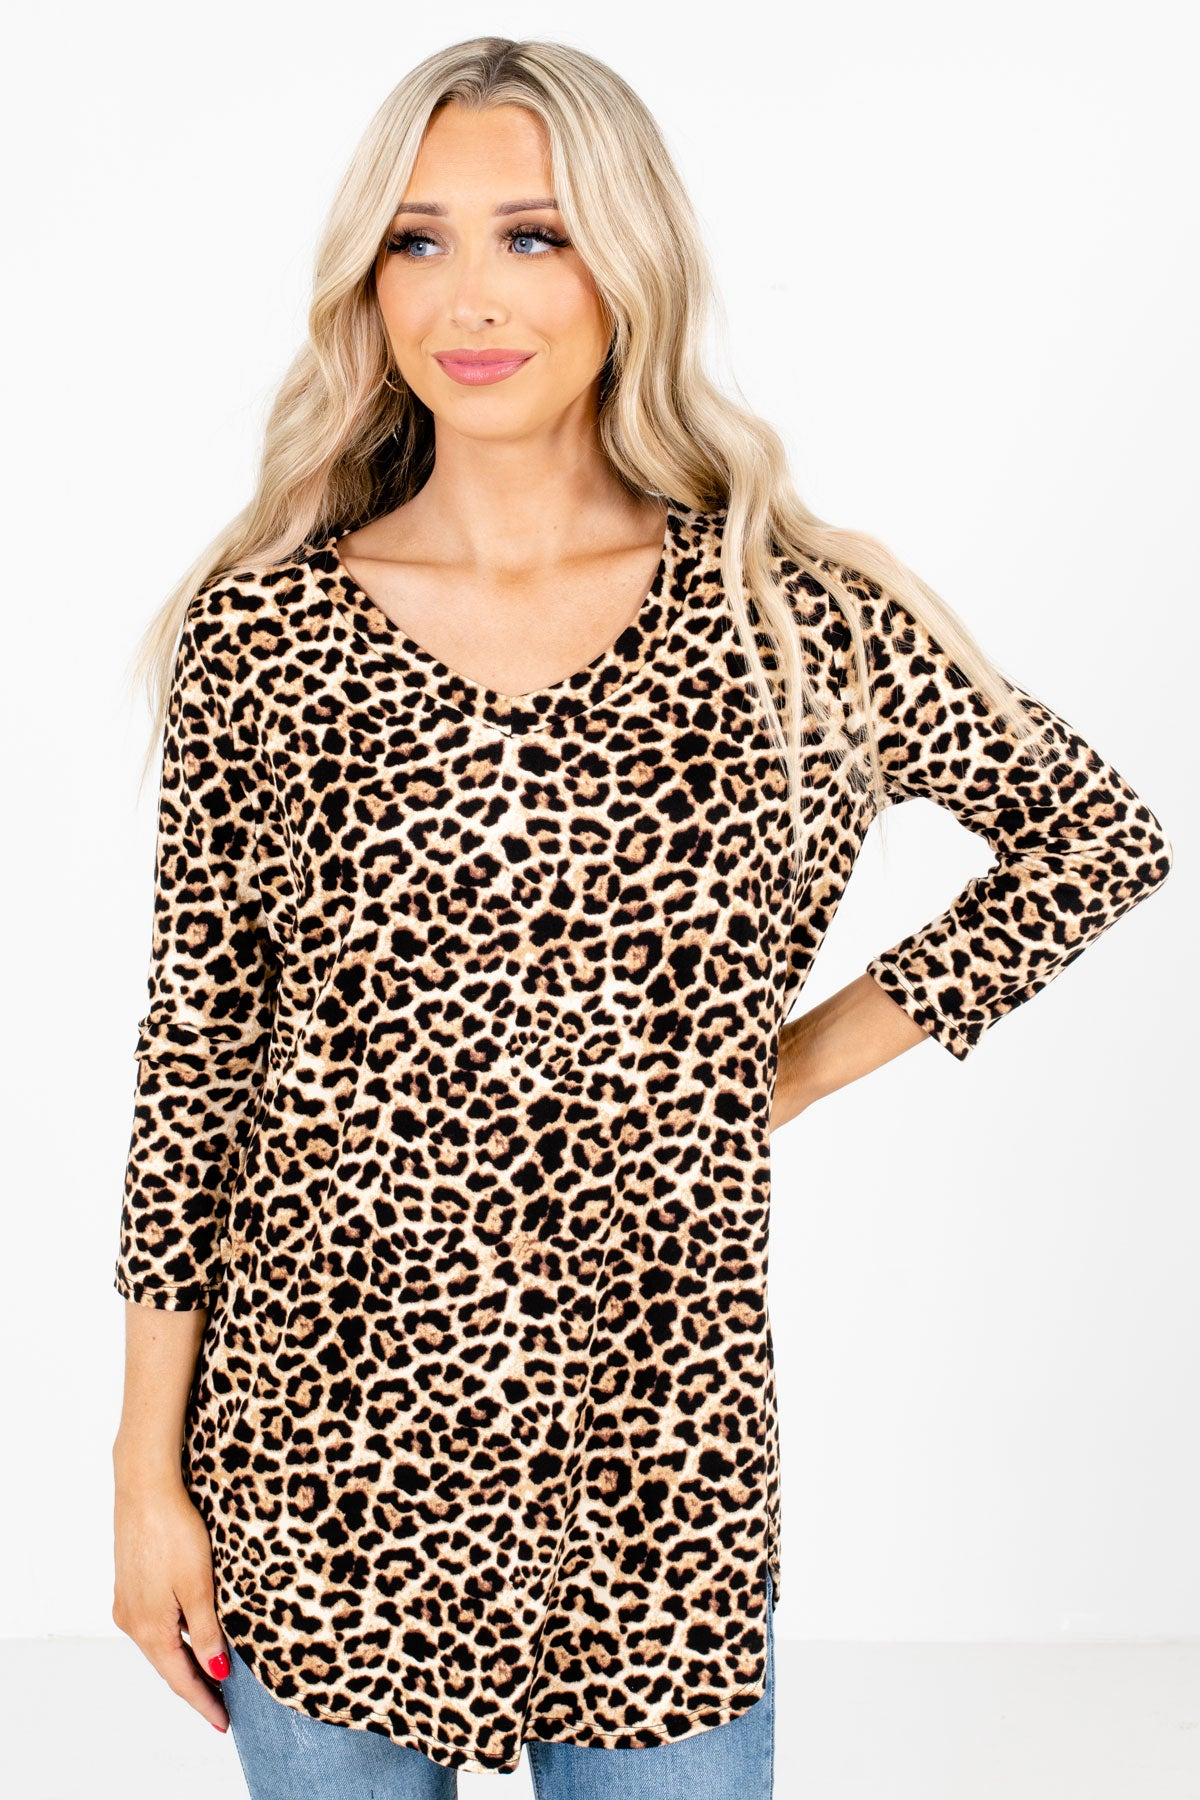 Brown Leopard Print Patterned Boutique Tops for Women